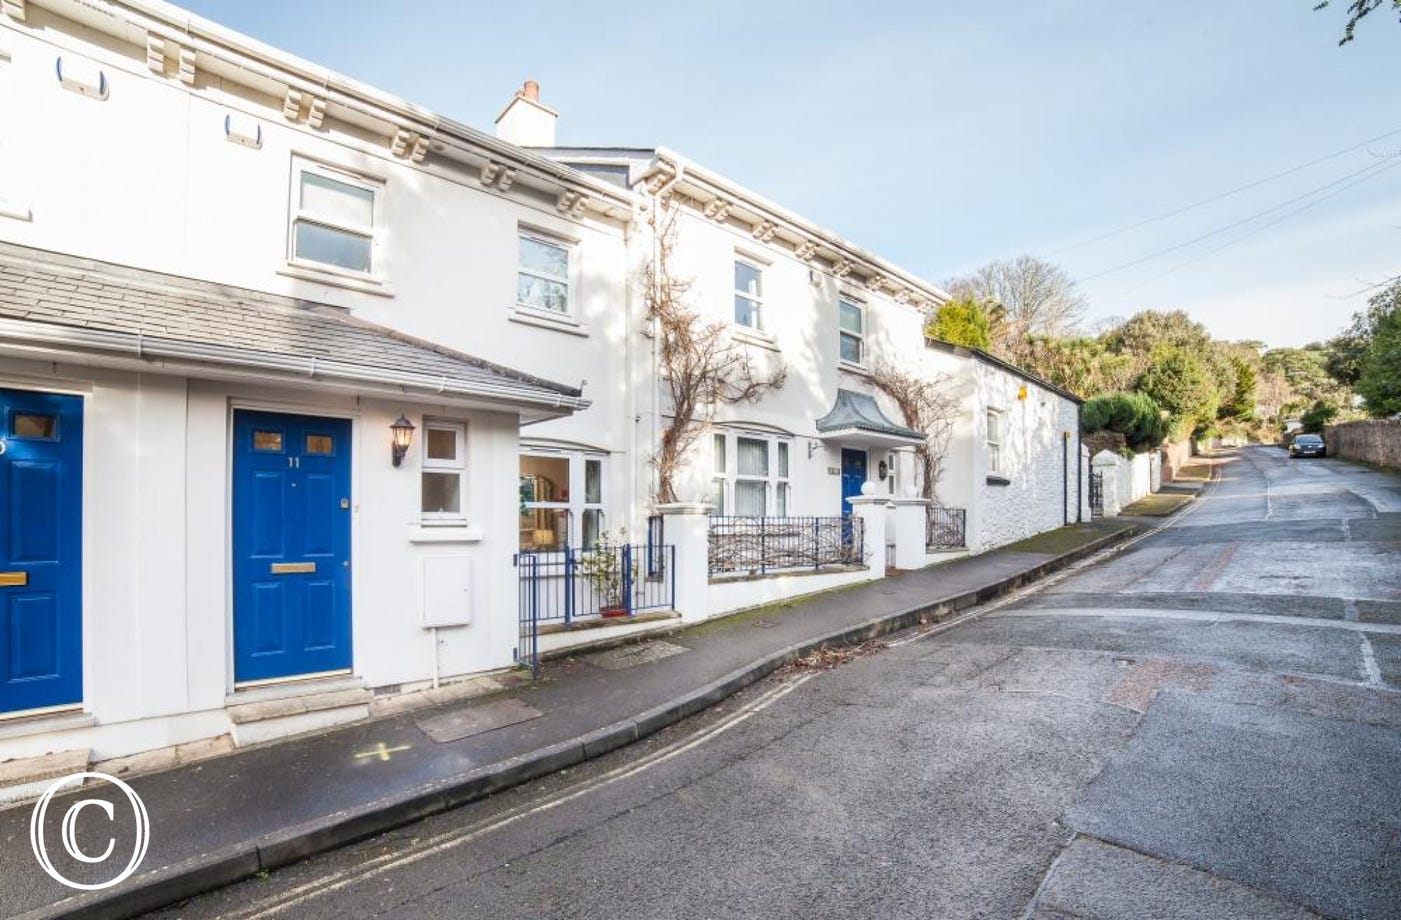 The Front of Beach Mews Holiday Cottage in Wellswood, Torquay. A Perfect Cottage for Beach Retreats and Family Holidays